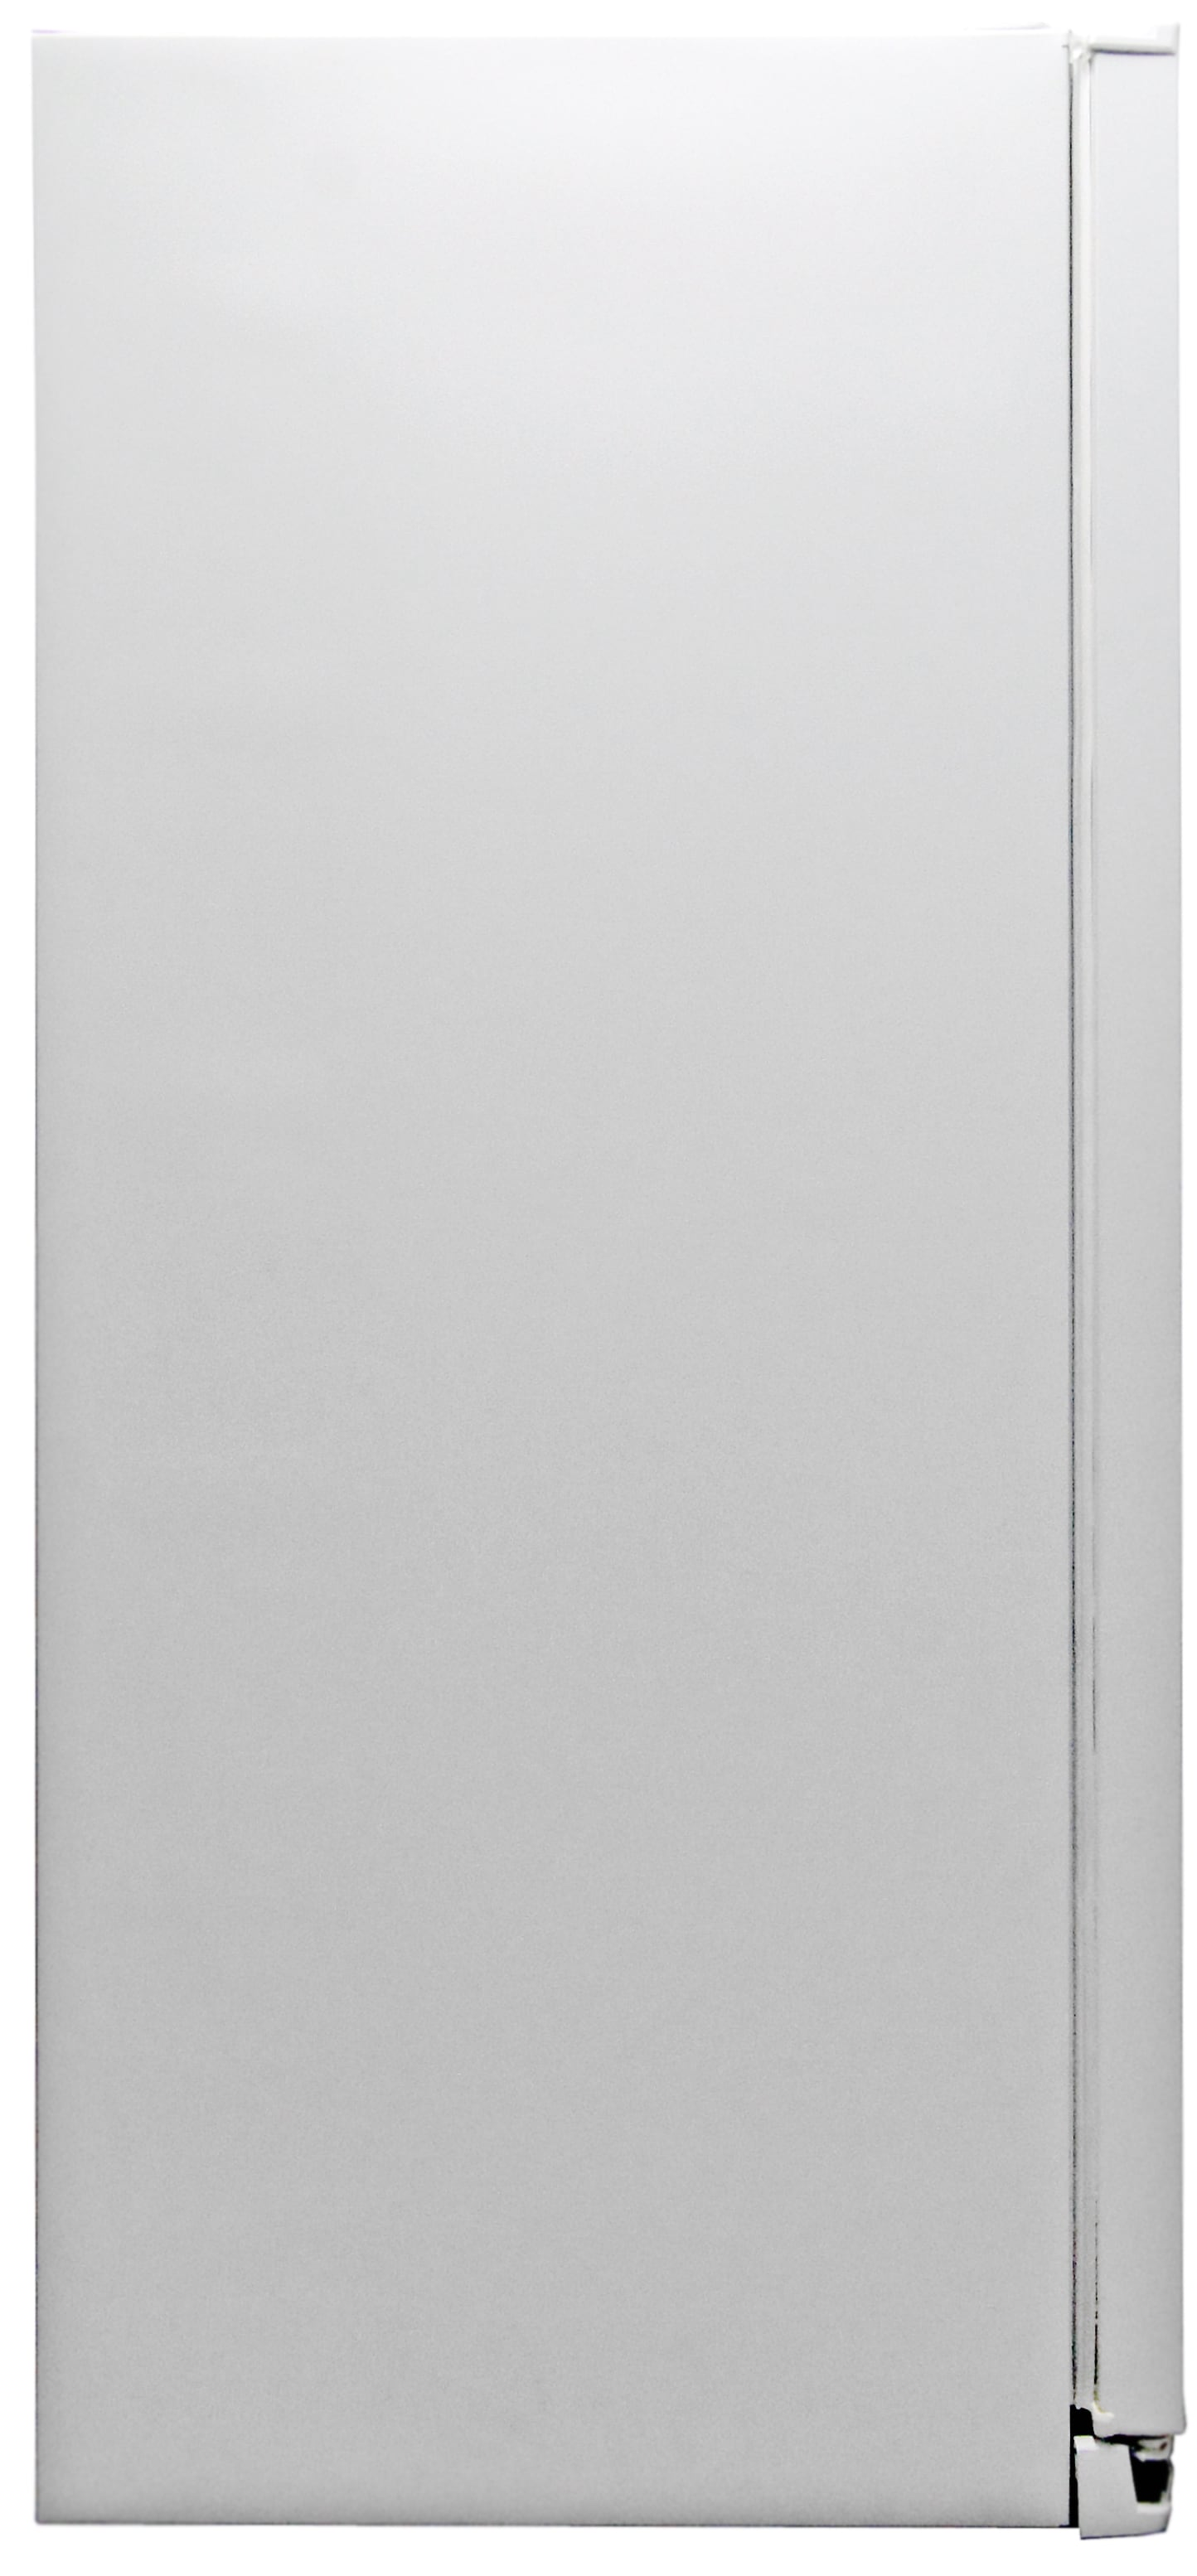 A white finish on the sides of the Kenmore Elite 51162 matches perfectly with the front.